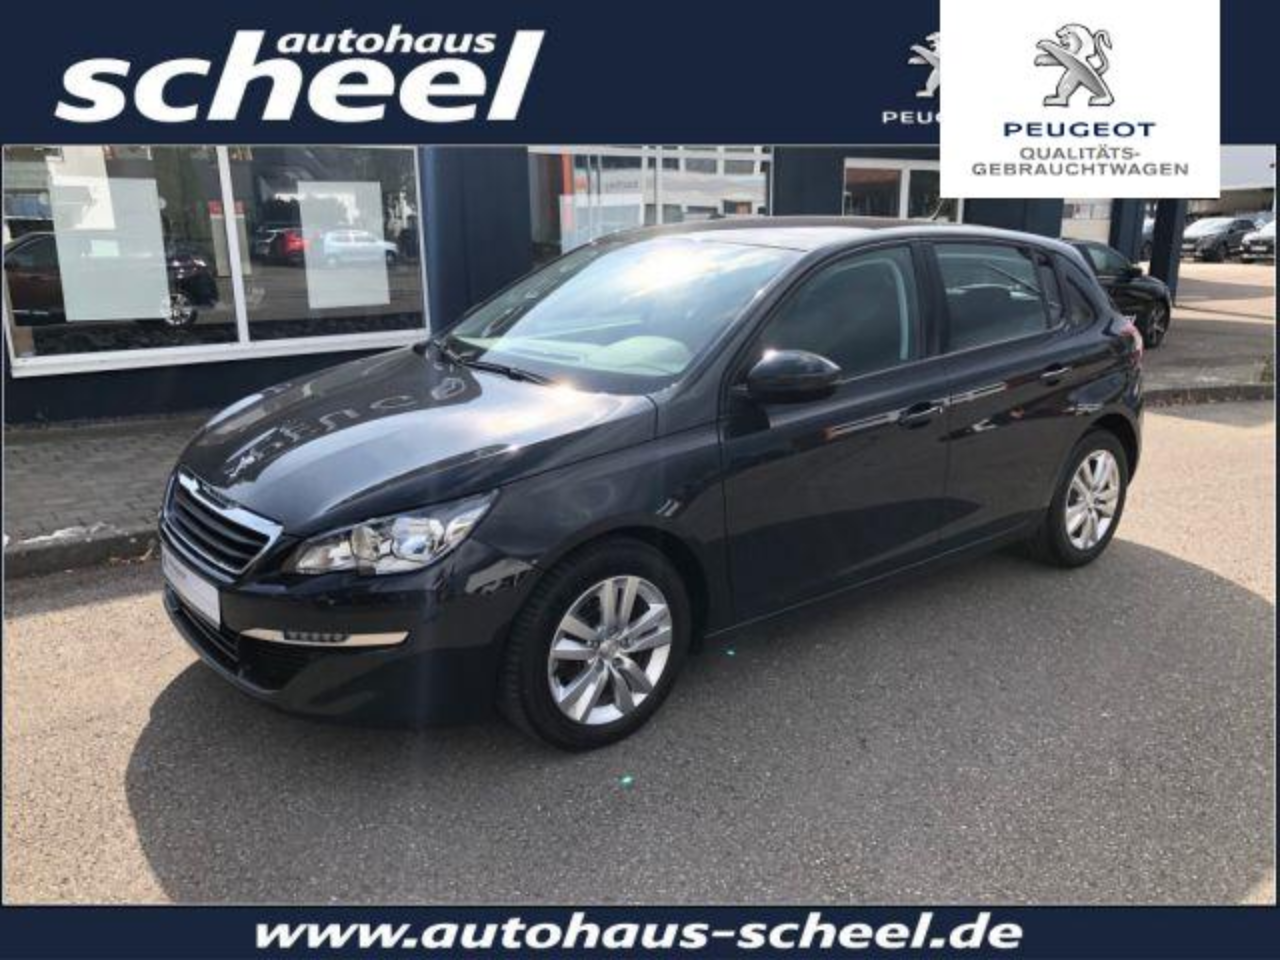 Peugeot 308 PureTech 110 Stop & Start Active